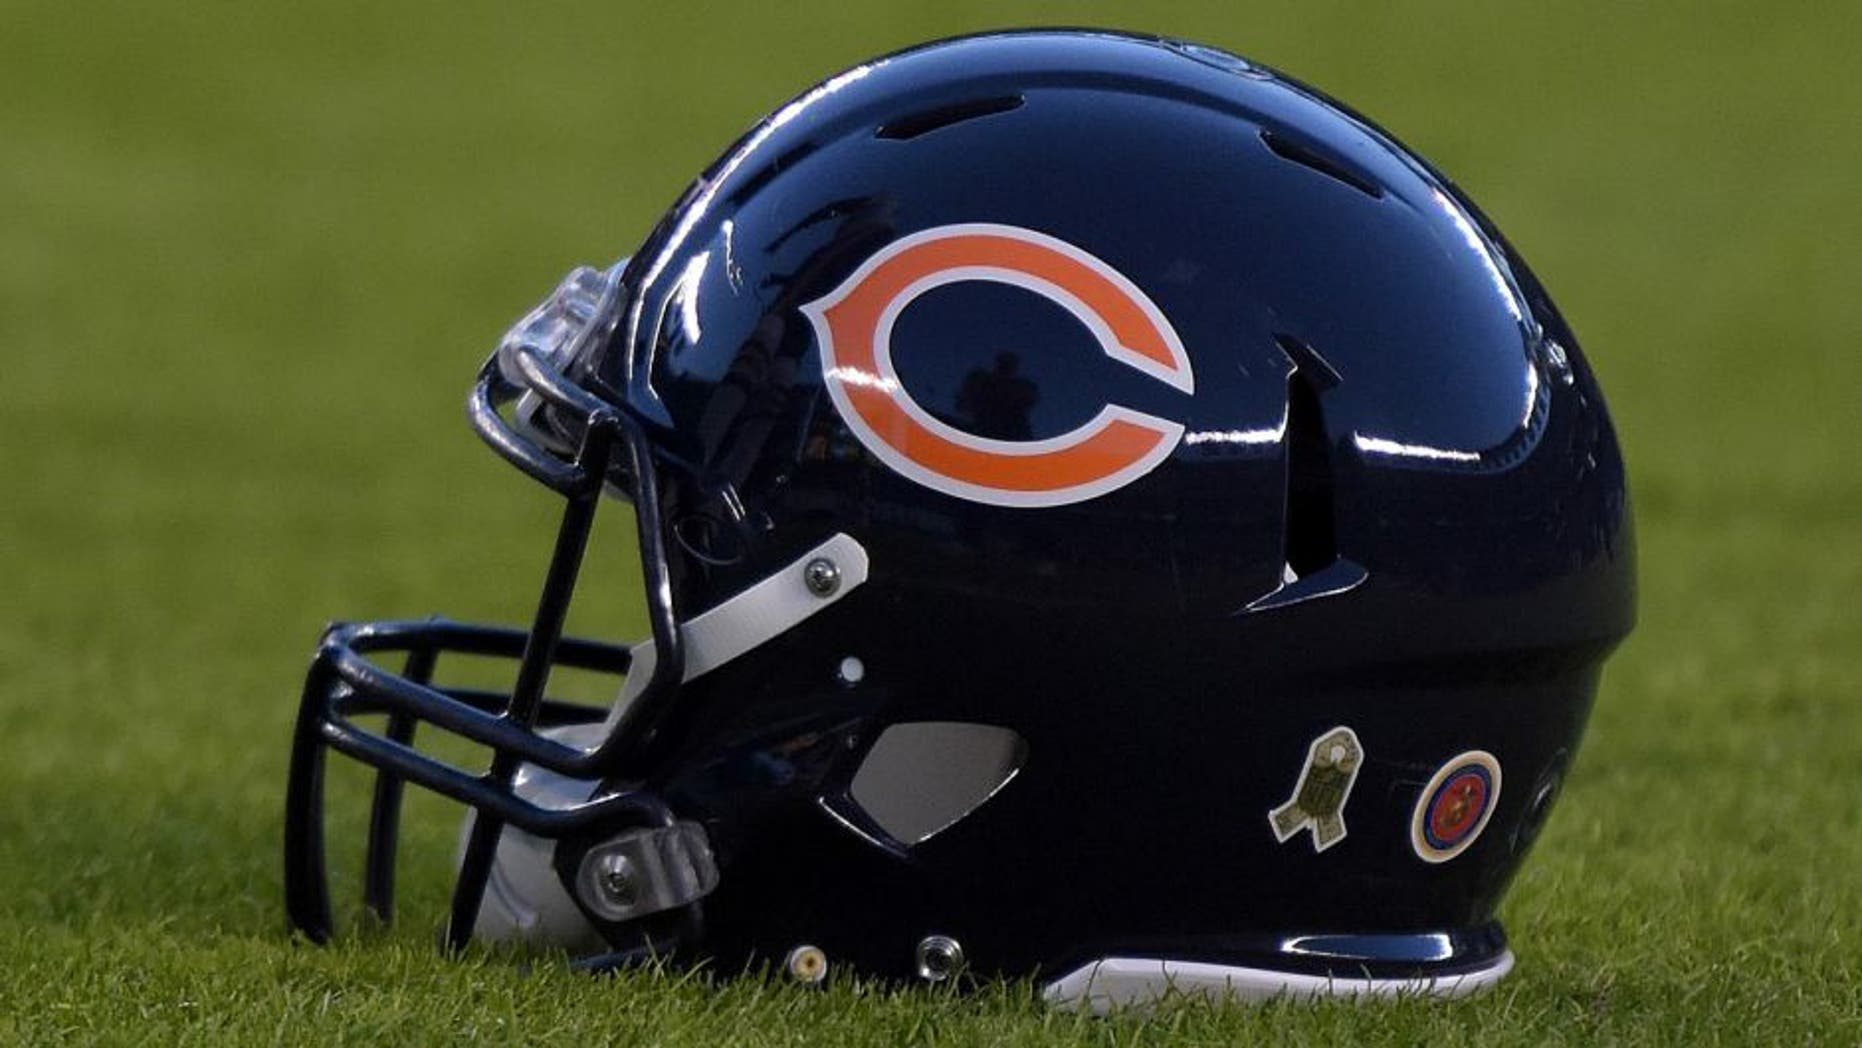 Nov 9, 2015; San Diego, CA, USA; General view of Chicago Bears helmet during NFL football game against the San Diego Chargers at Qualcomm Stadium. Mandatory Credit: Kirby Lee-USA TODAY Sports